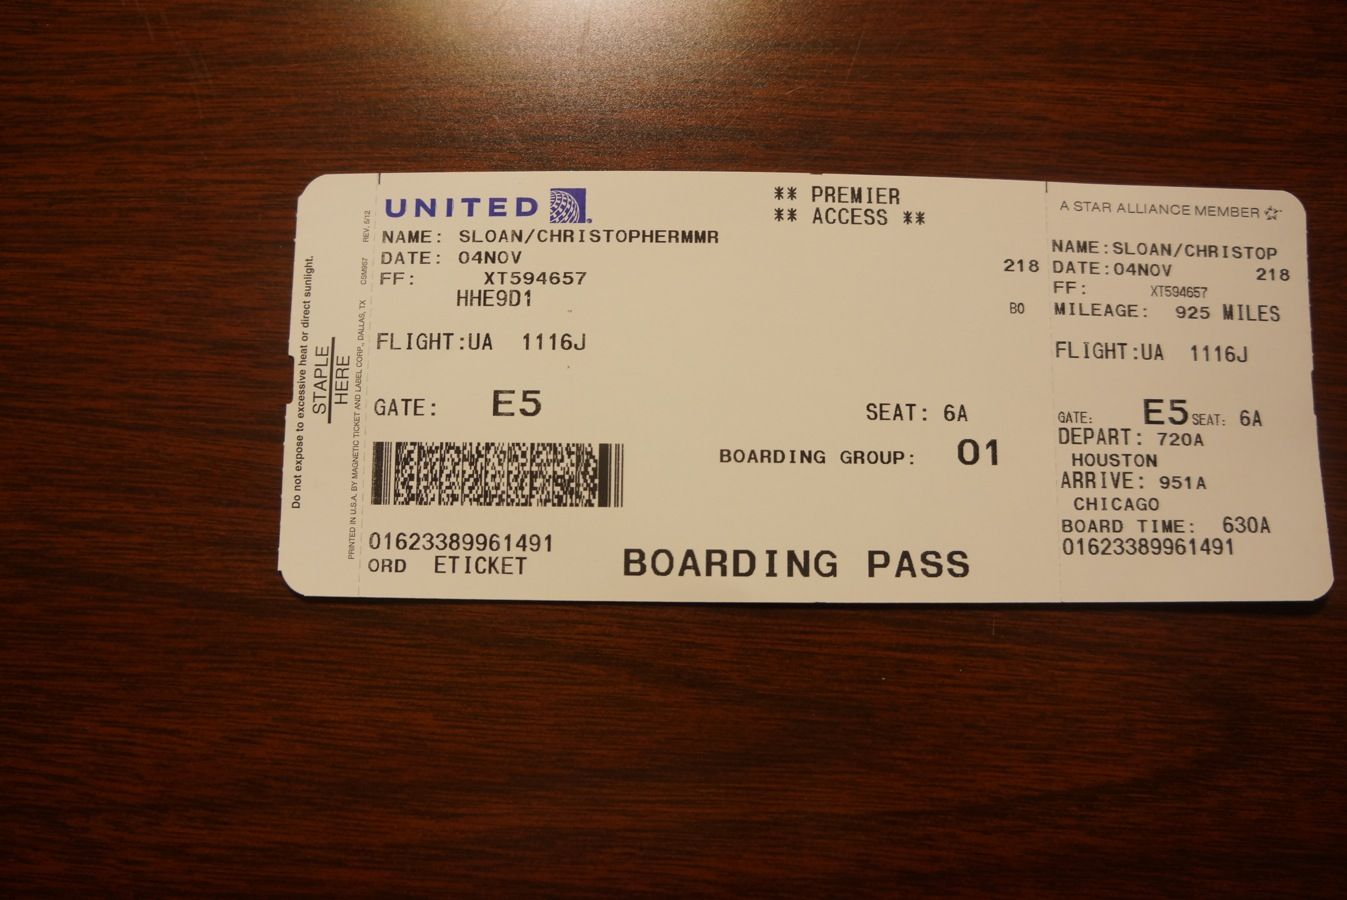 002 united 787 inaugural boarding pass